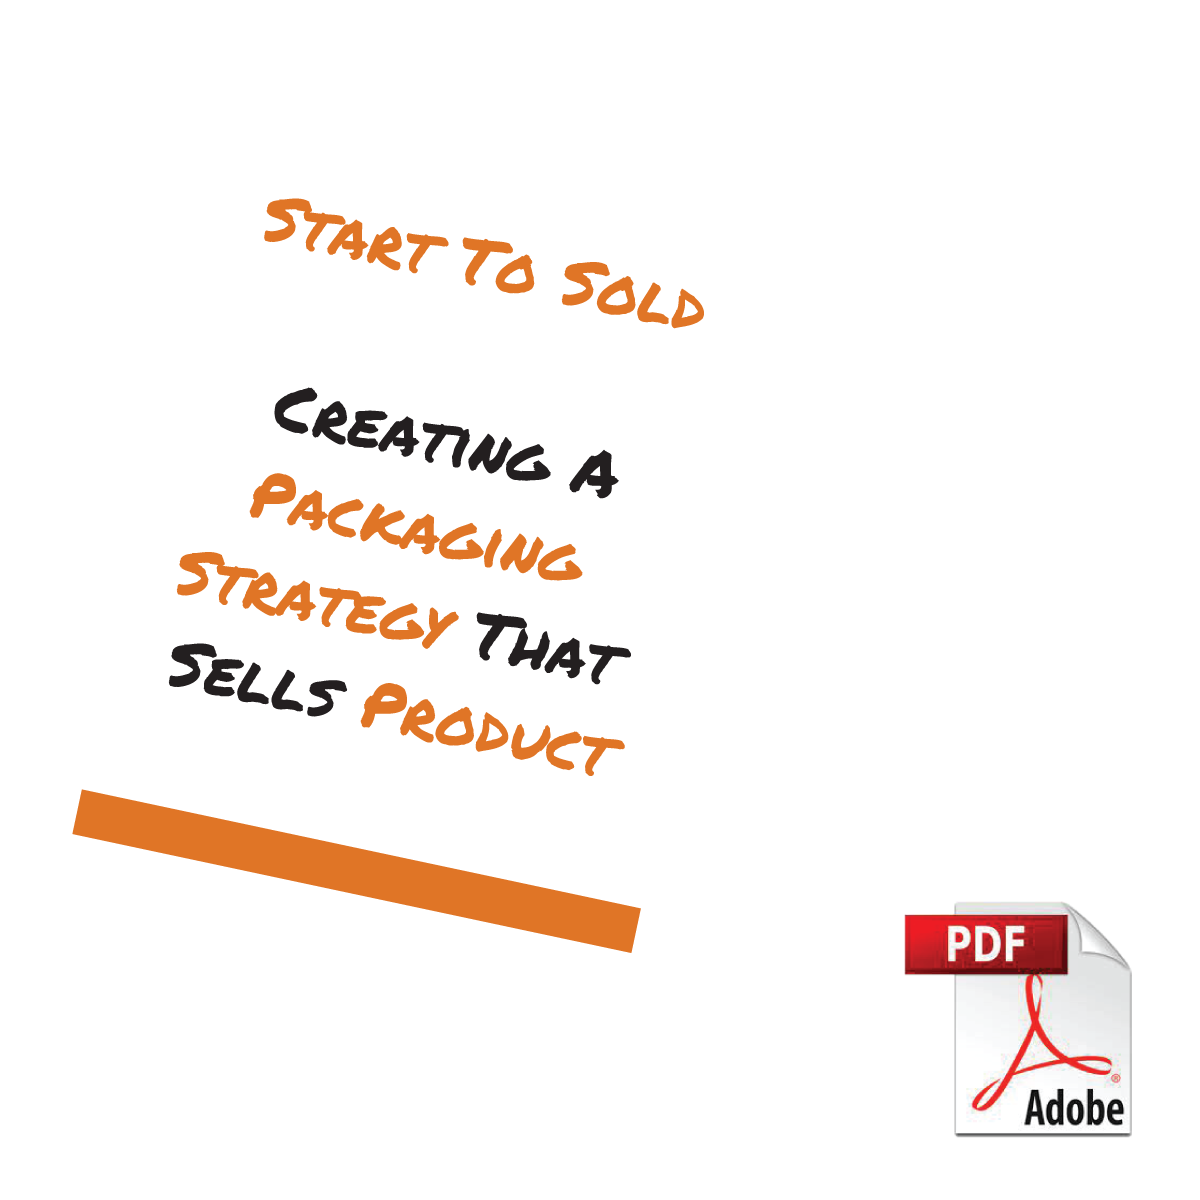 2Start To Sold Creating A Packaging Strategy That Sells Product